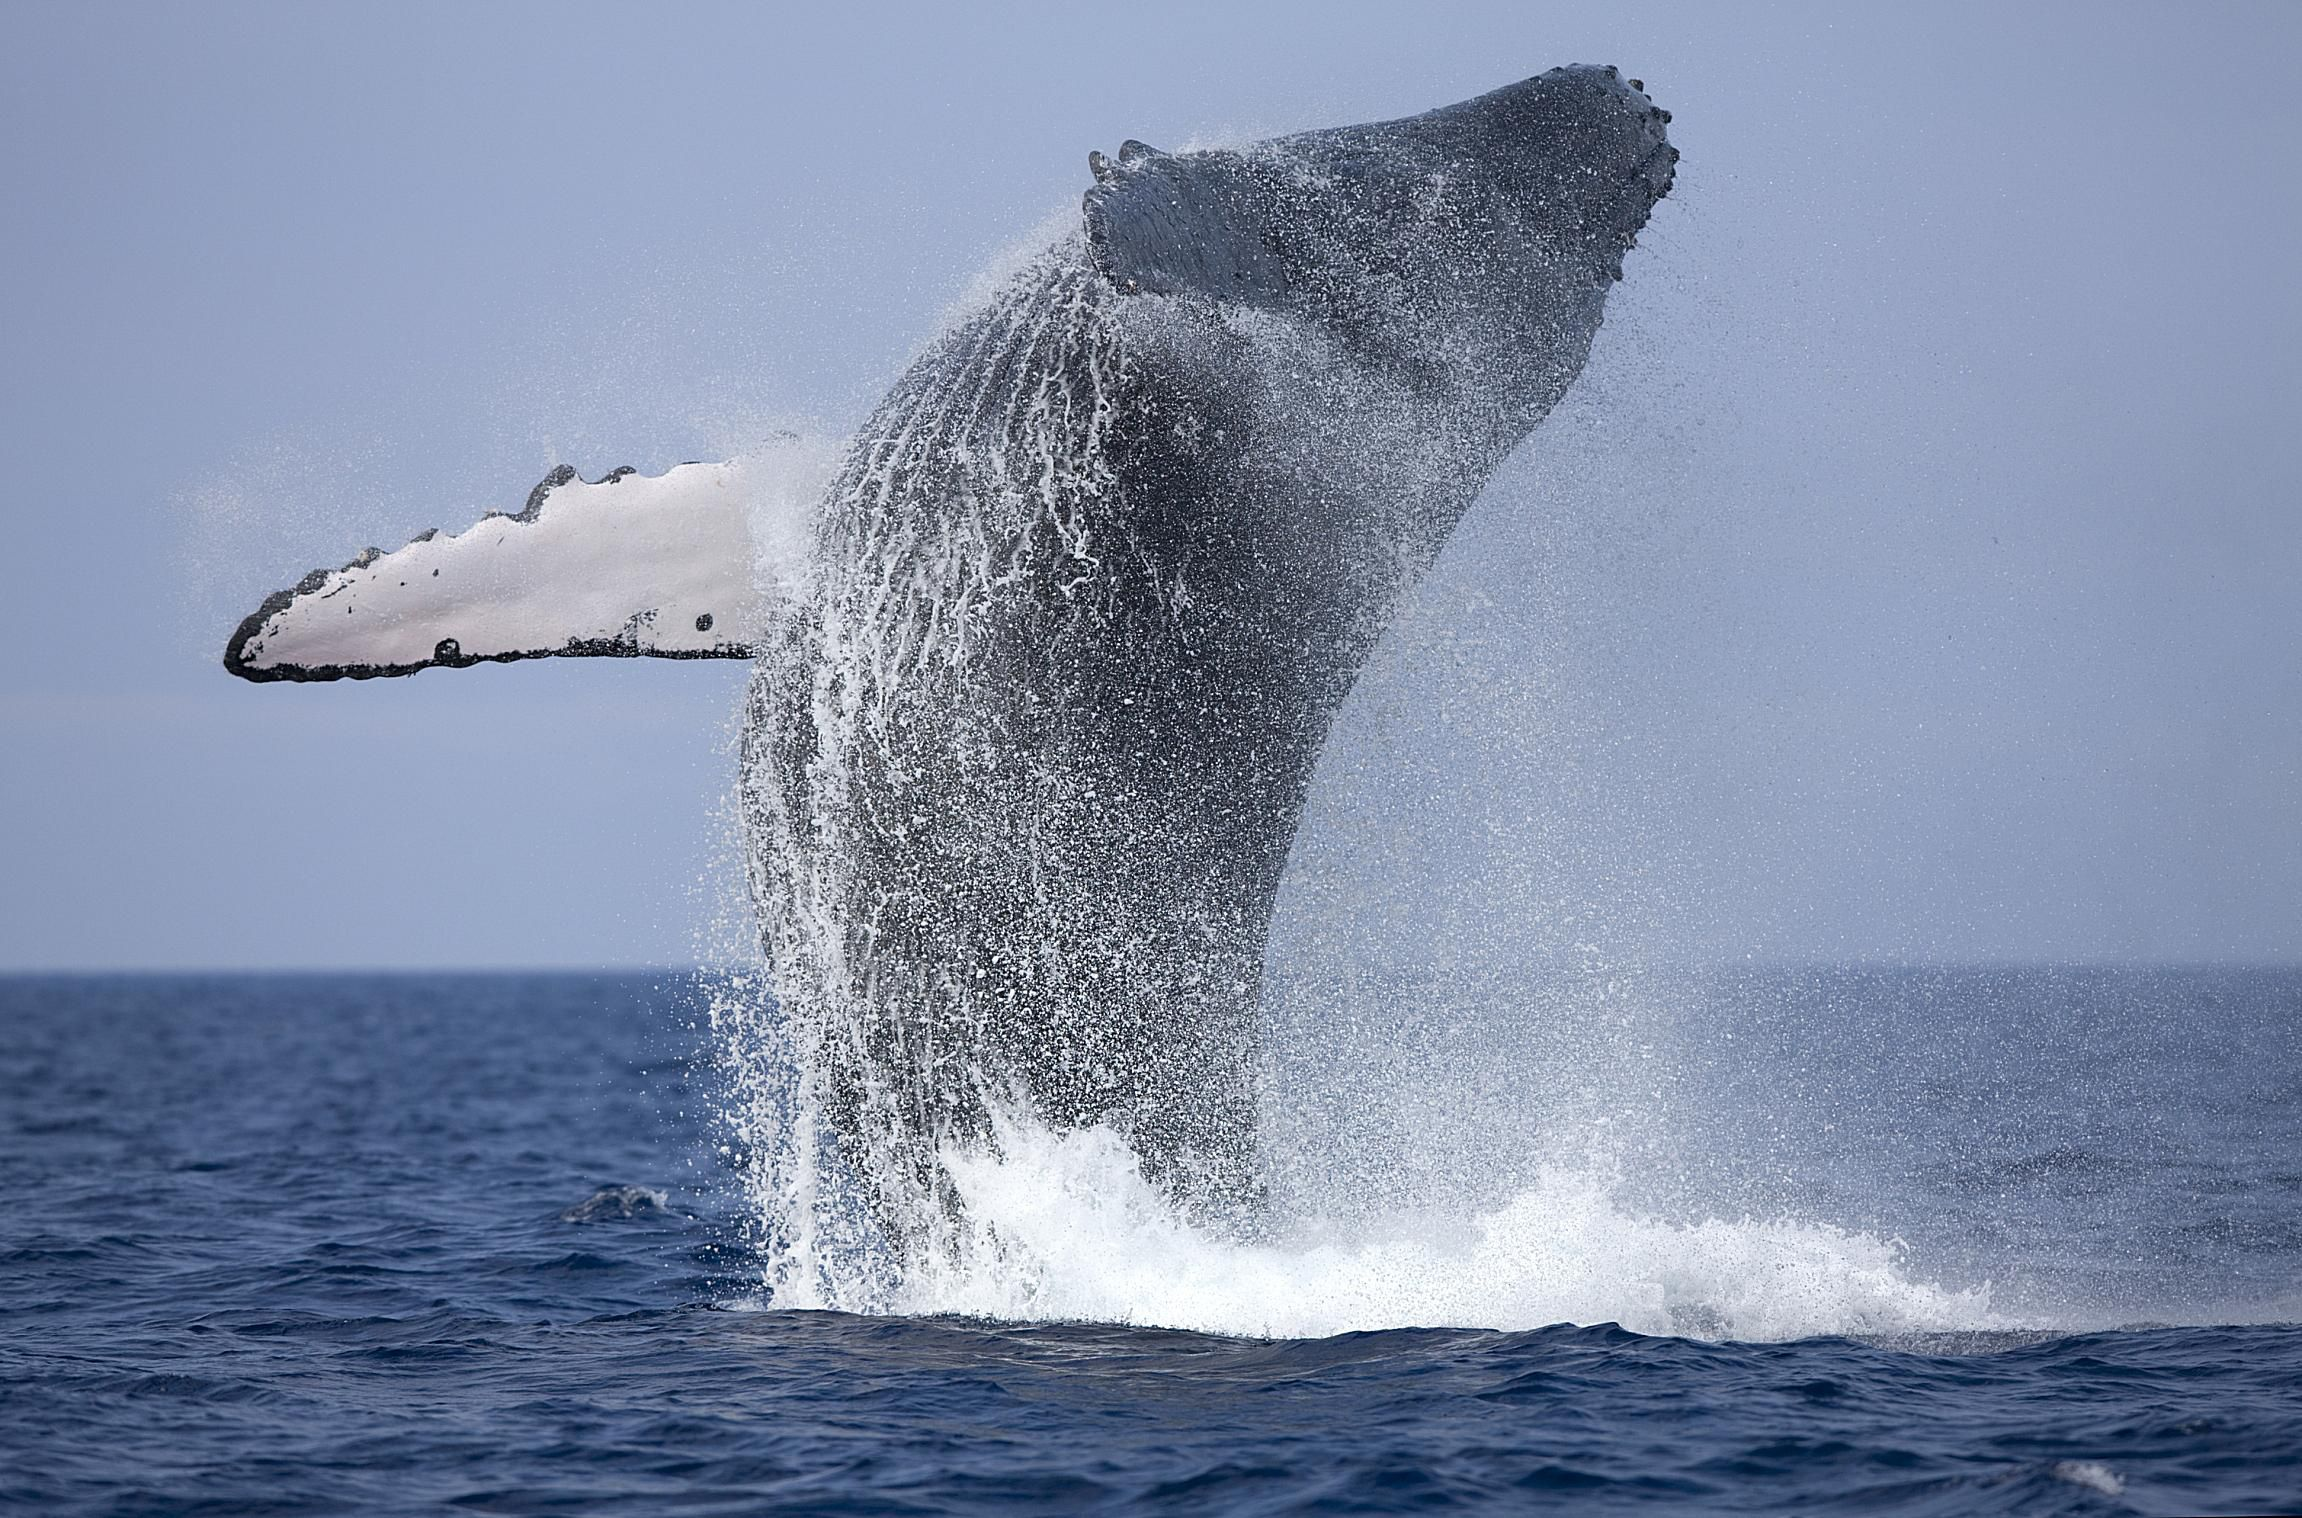 Whale watching in Iceland's frigid waters